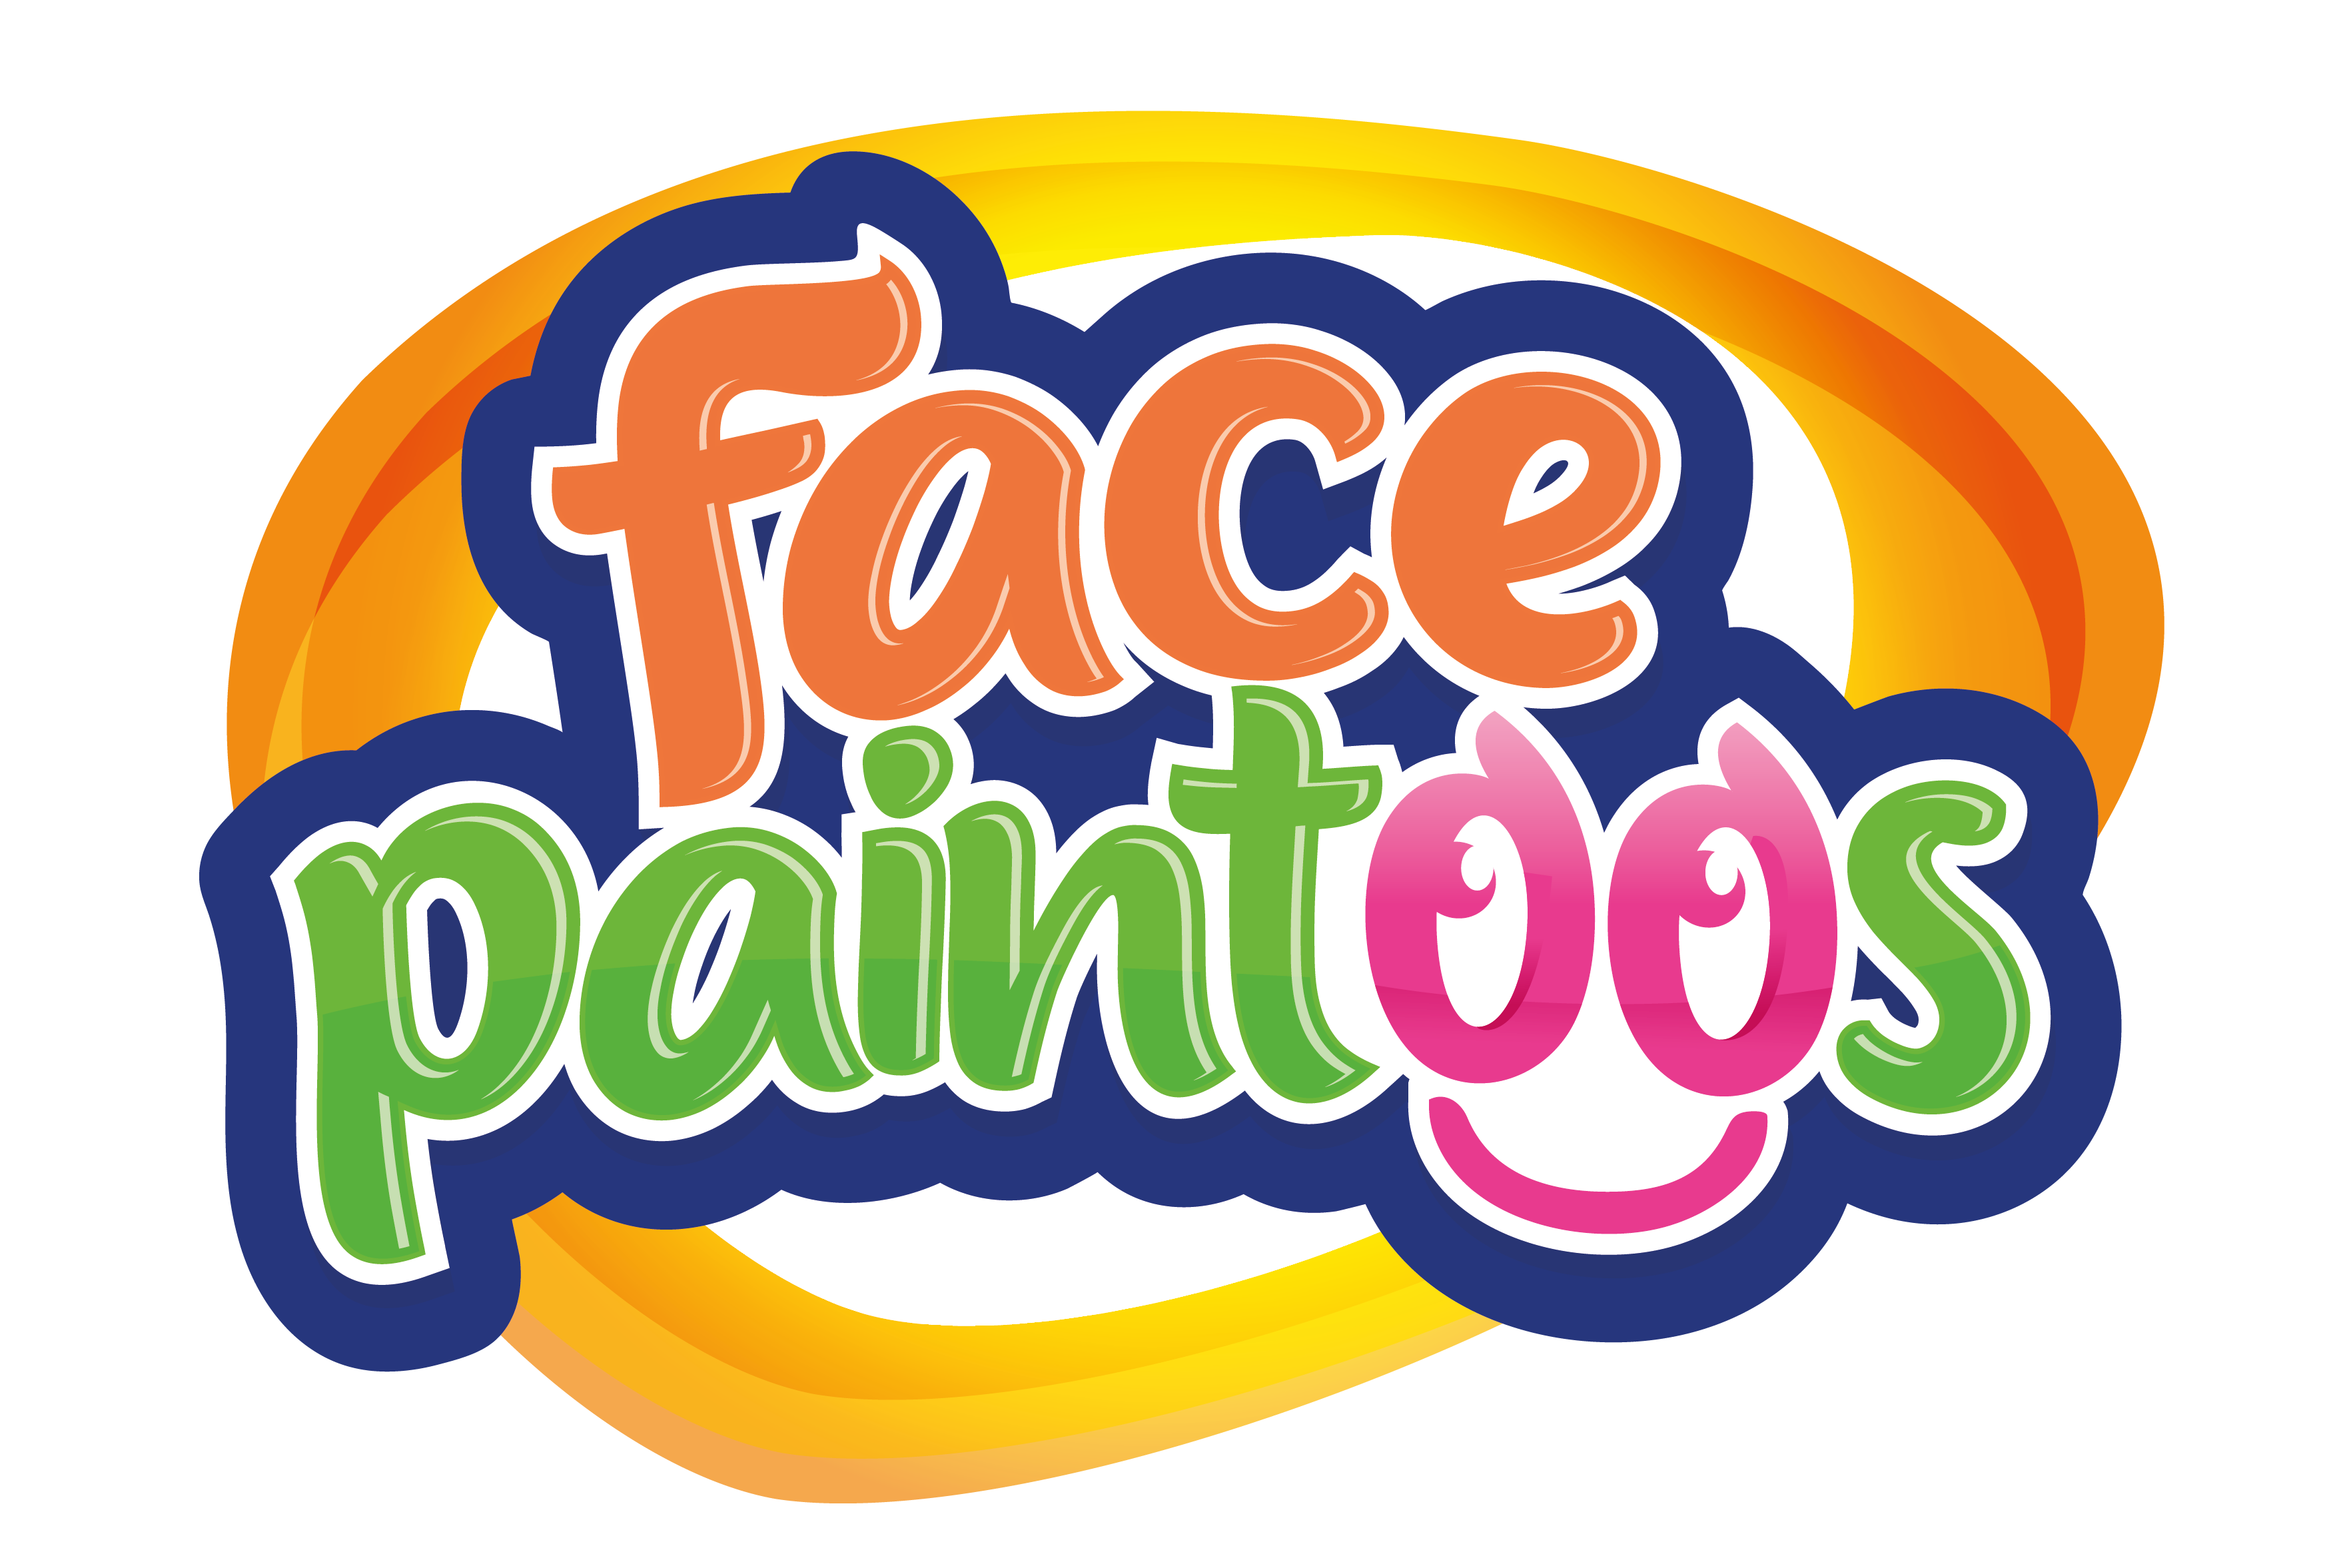 Face Paintoos™